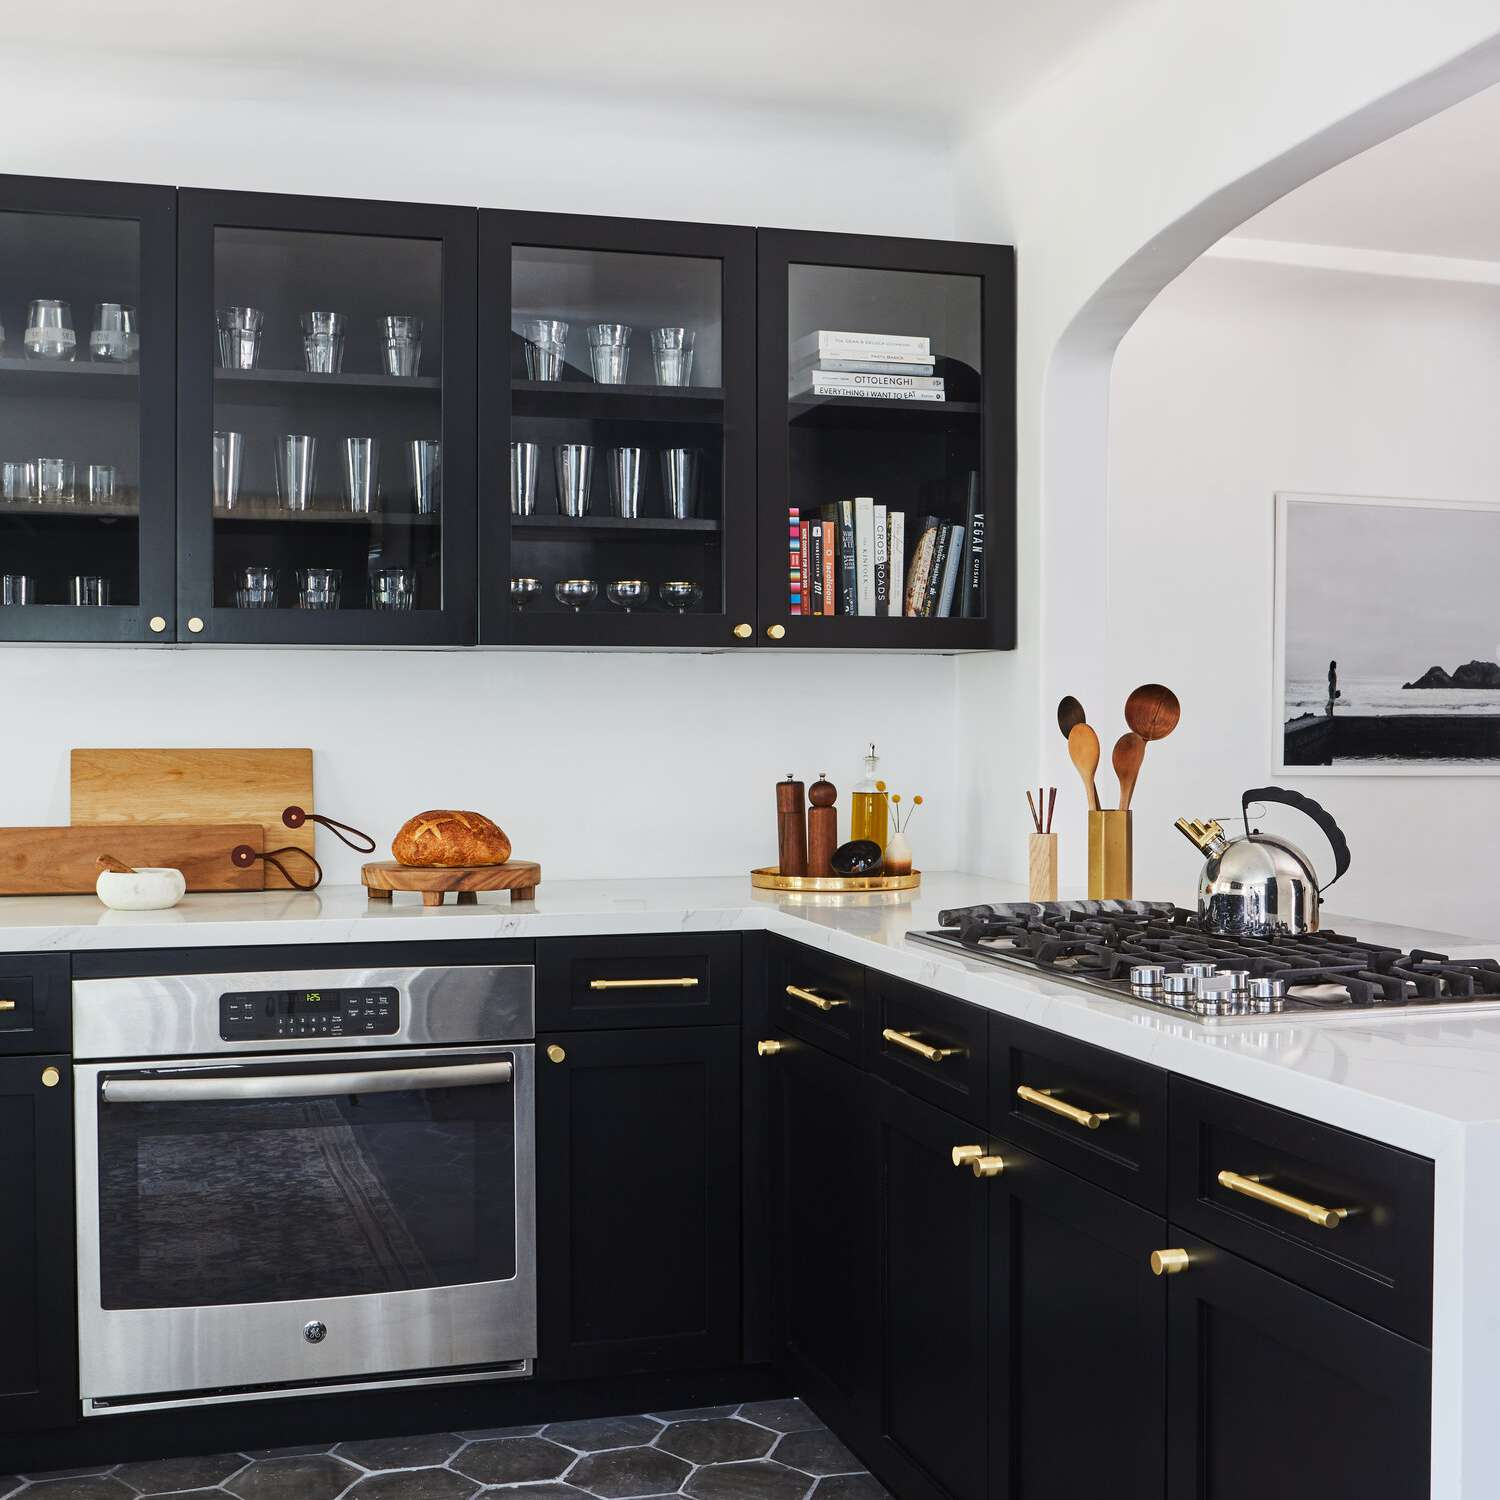 An all-black kitchen with matching cabinets and floors